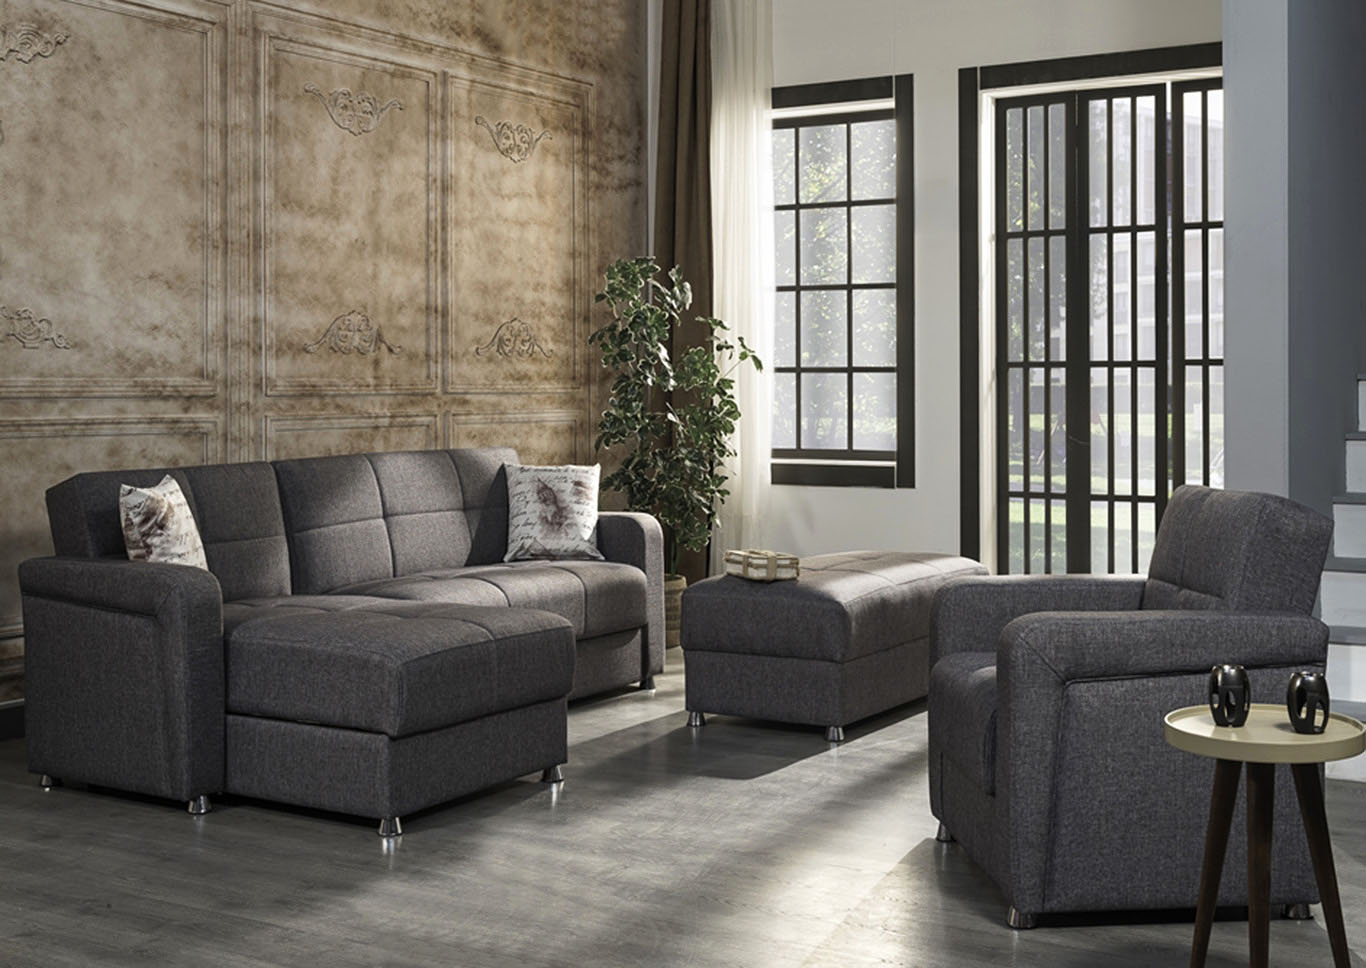 Harmony Gray Sectional,CasaMode Functional Furniture